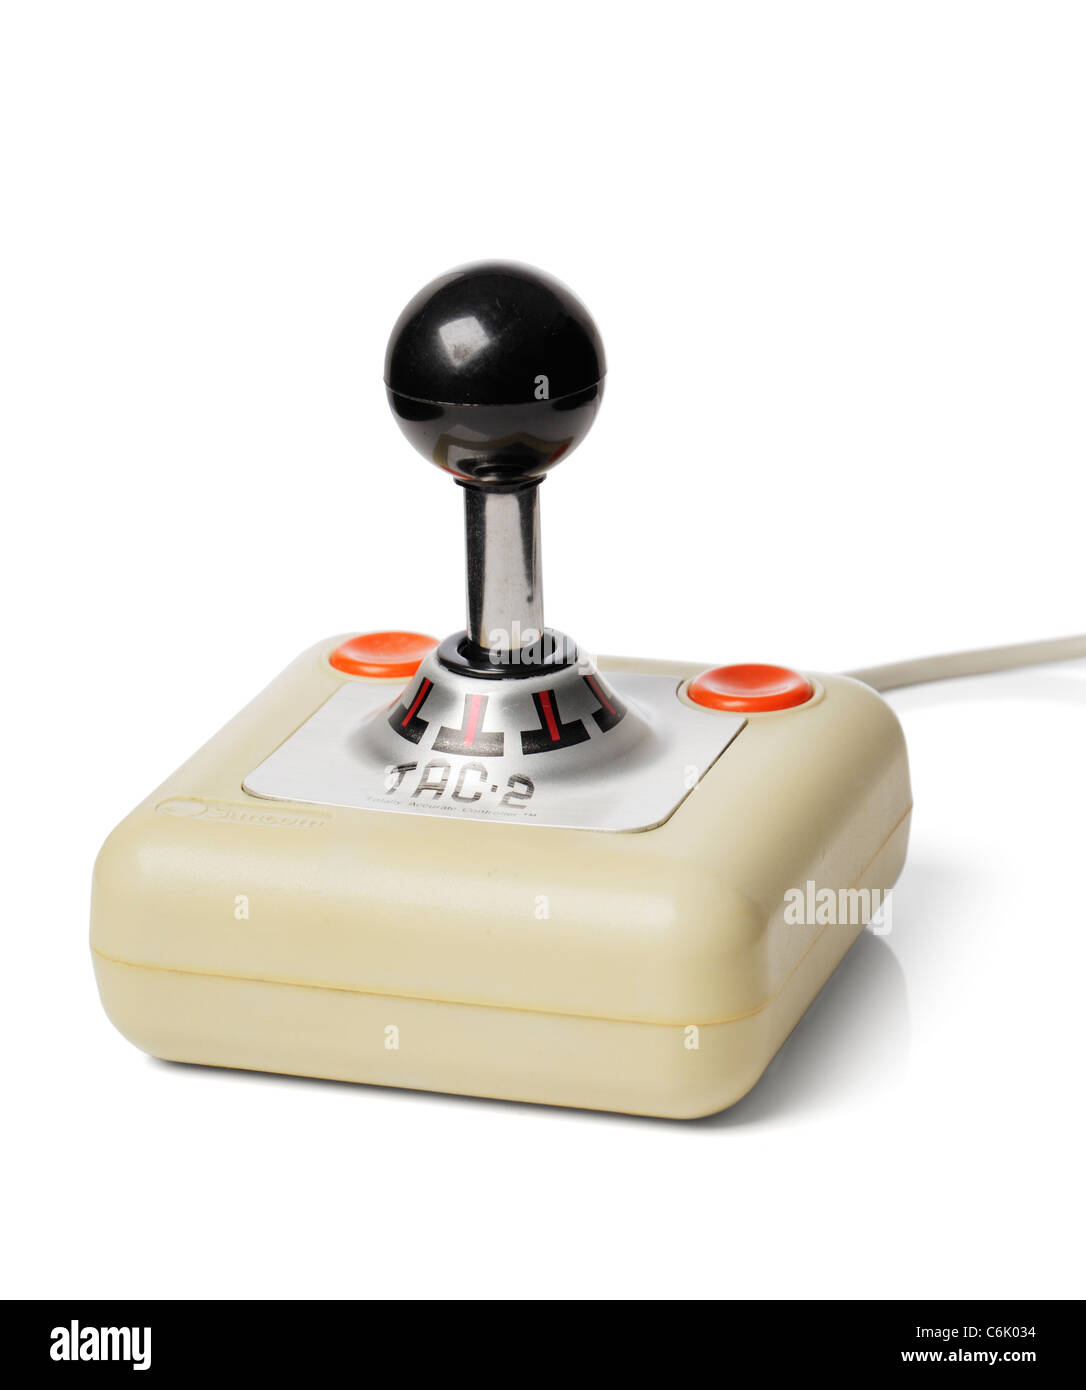 Computer game joystick from 1980s - Stock Image